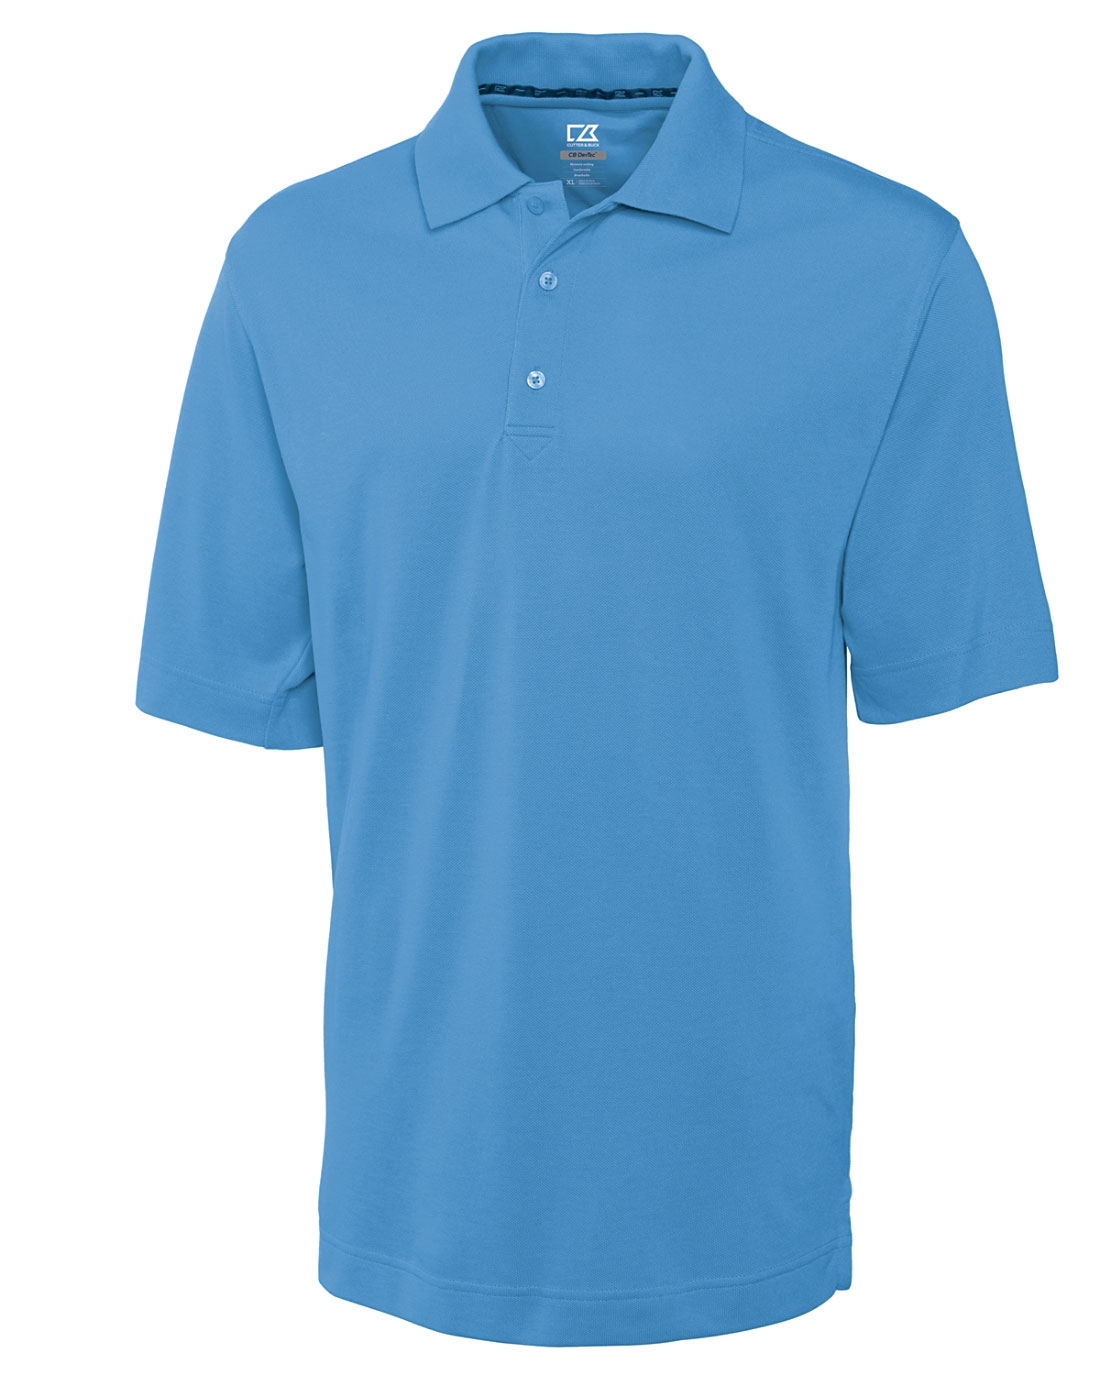 9c7653ba6 Custom CB DryTec™ Championship Polo for Men Big and Tall